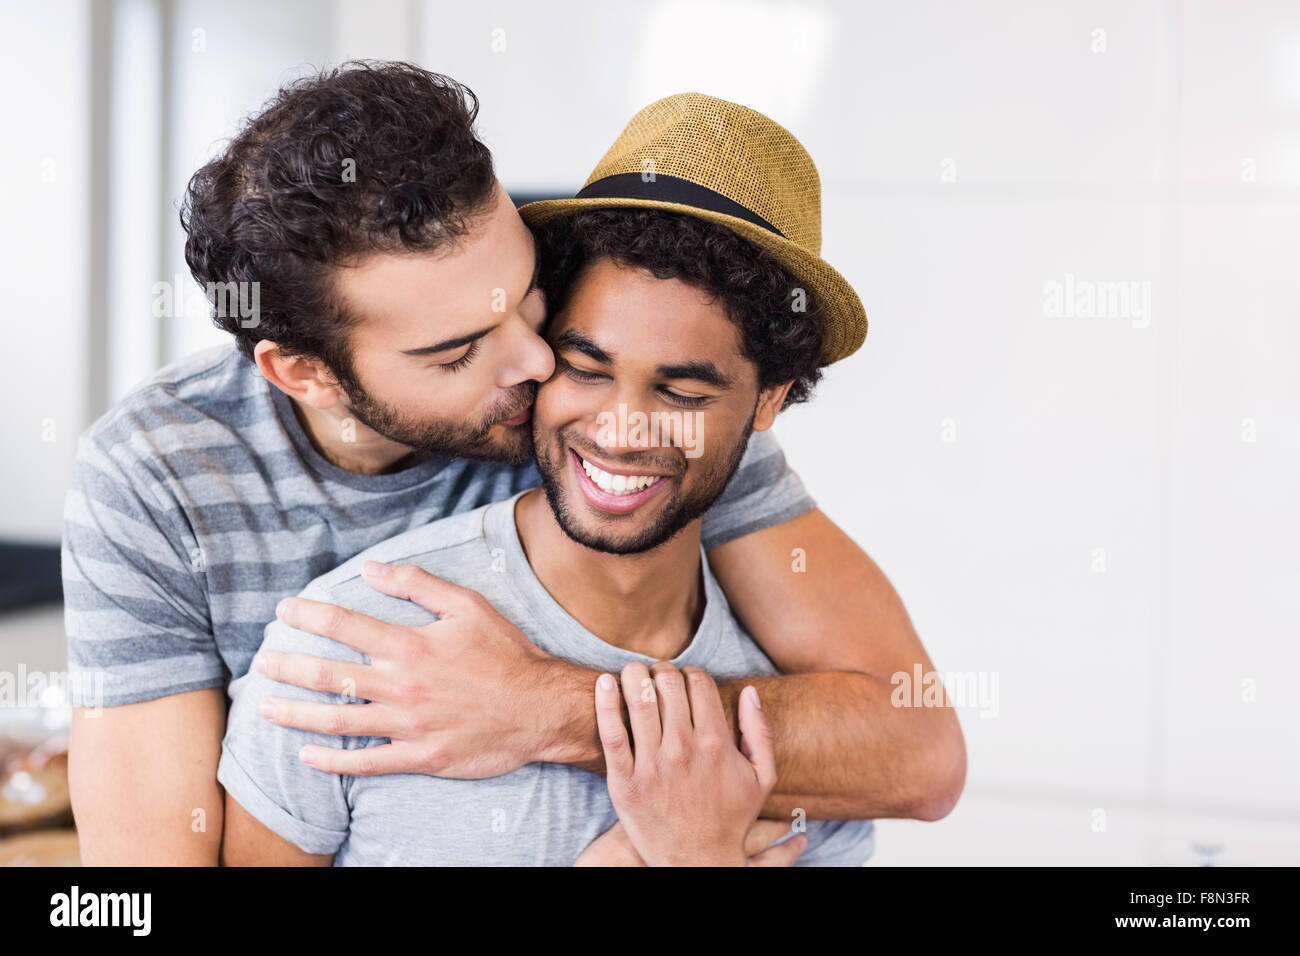 Handsome man hugging and kissing his boyfriends cheek - Stock Image